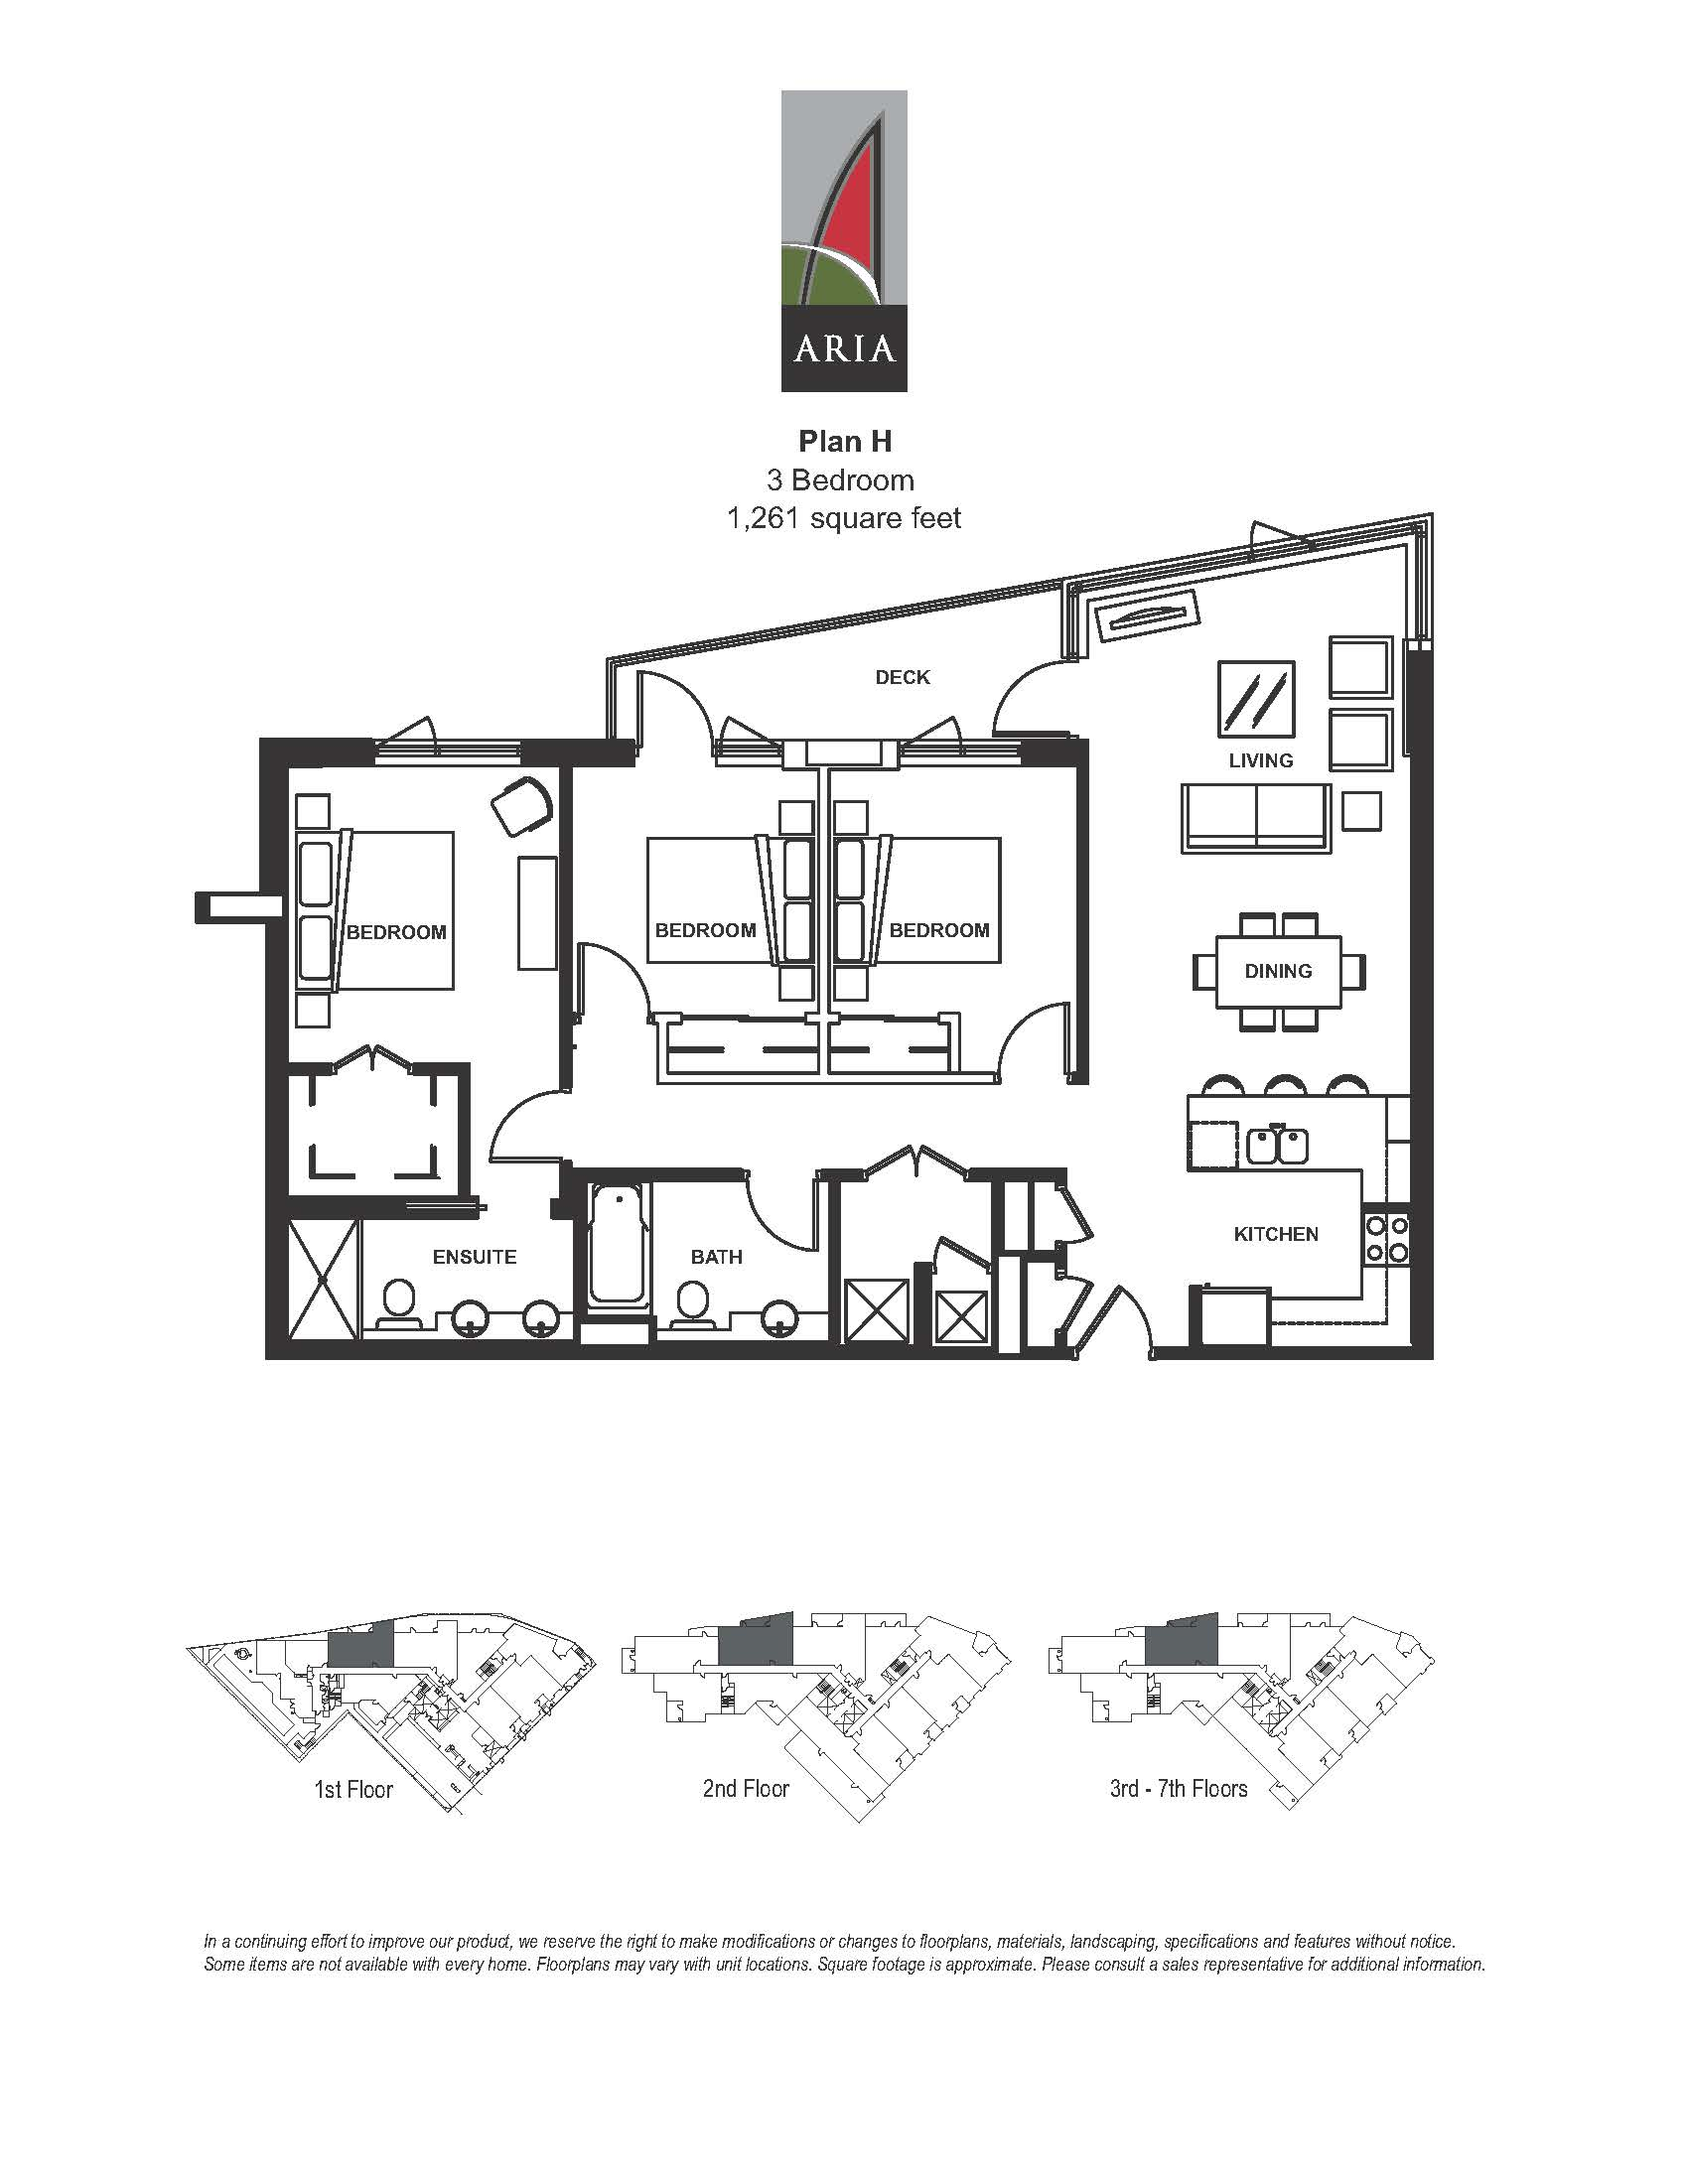 Aria 3 Bedroom – Plan H